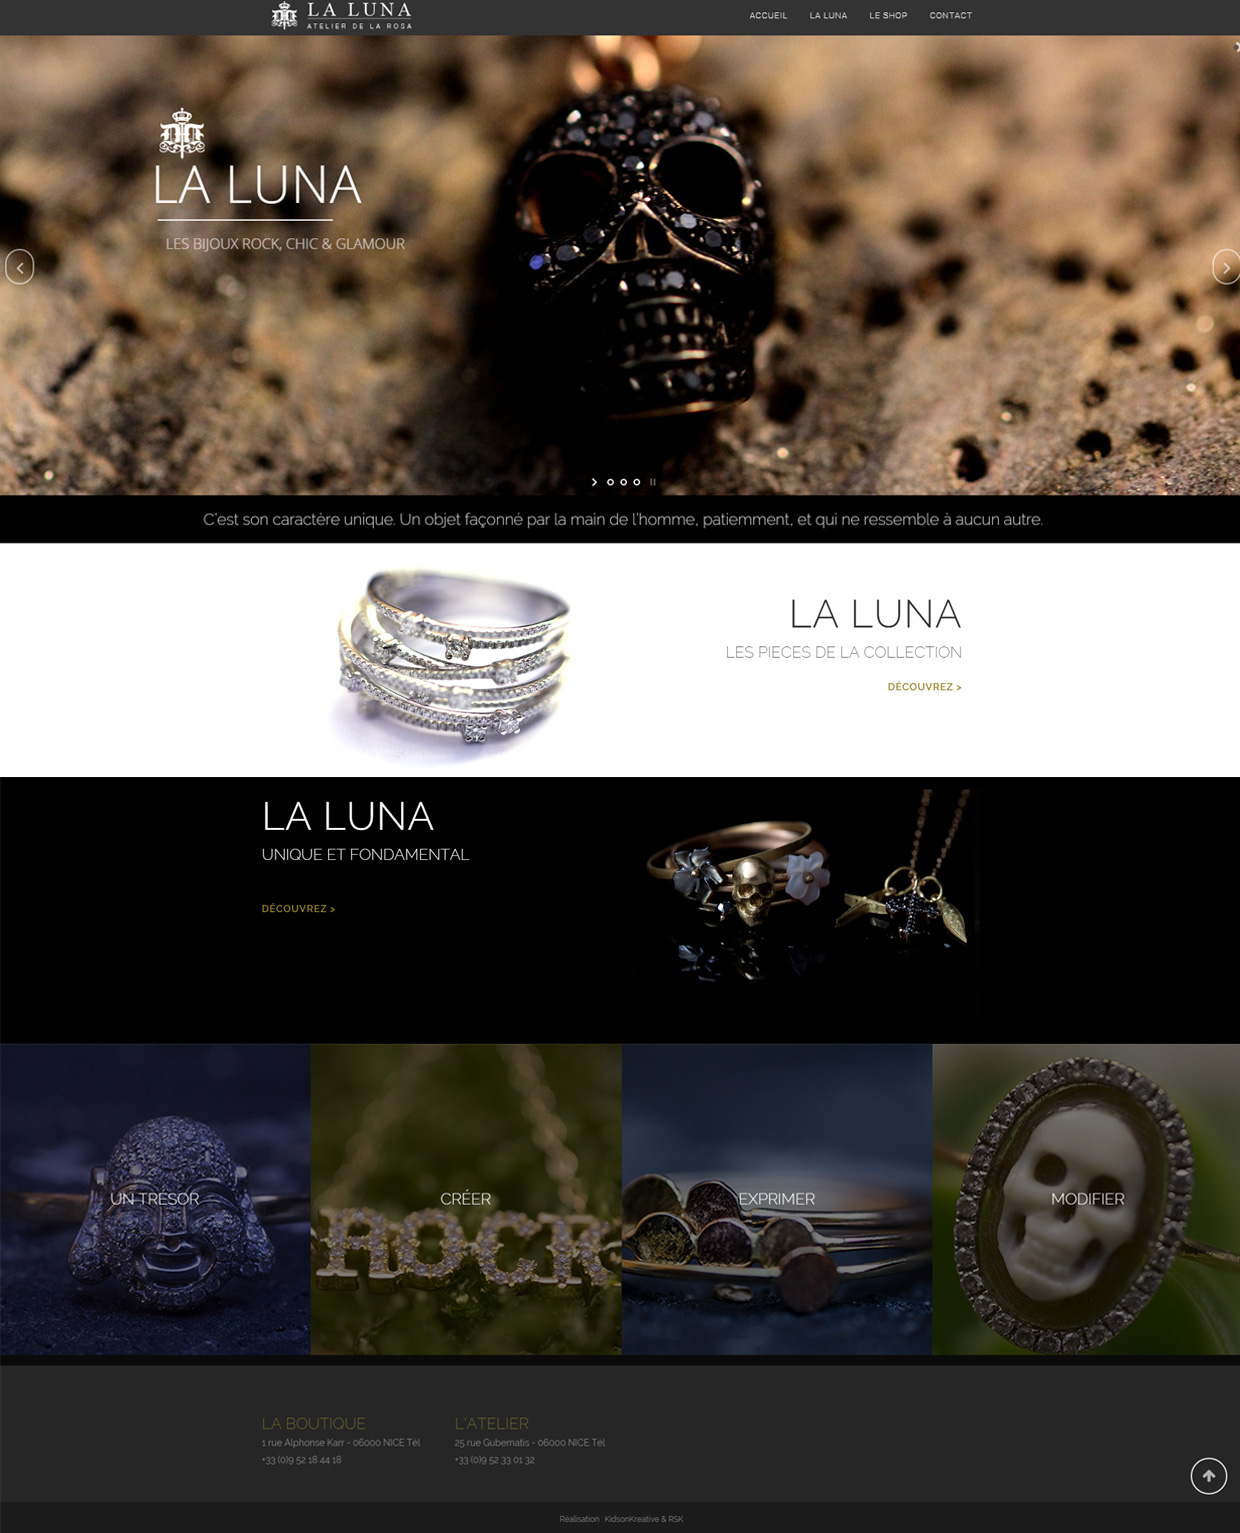 creation de sites internet la luna